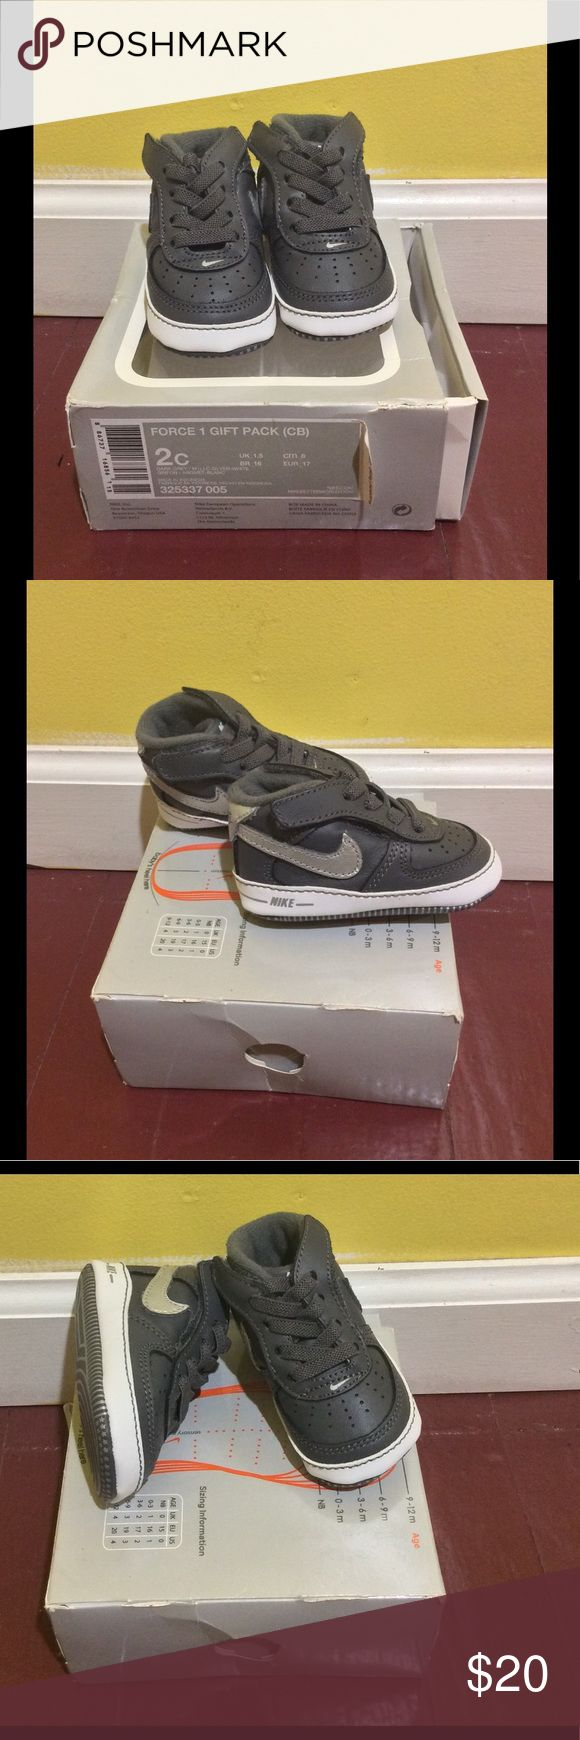 Pre-Owned NIKE AIR FORCE 1 GIFT PACK CB BABY Color: Dark Grey / Metallic Silver - White 325337 005 Size: 2c (3-6 months) - Leather and synthetic upper - Textile lining - Velcro® fastener - Nike logo on tongue Nike Shoes Baby & Walker